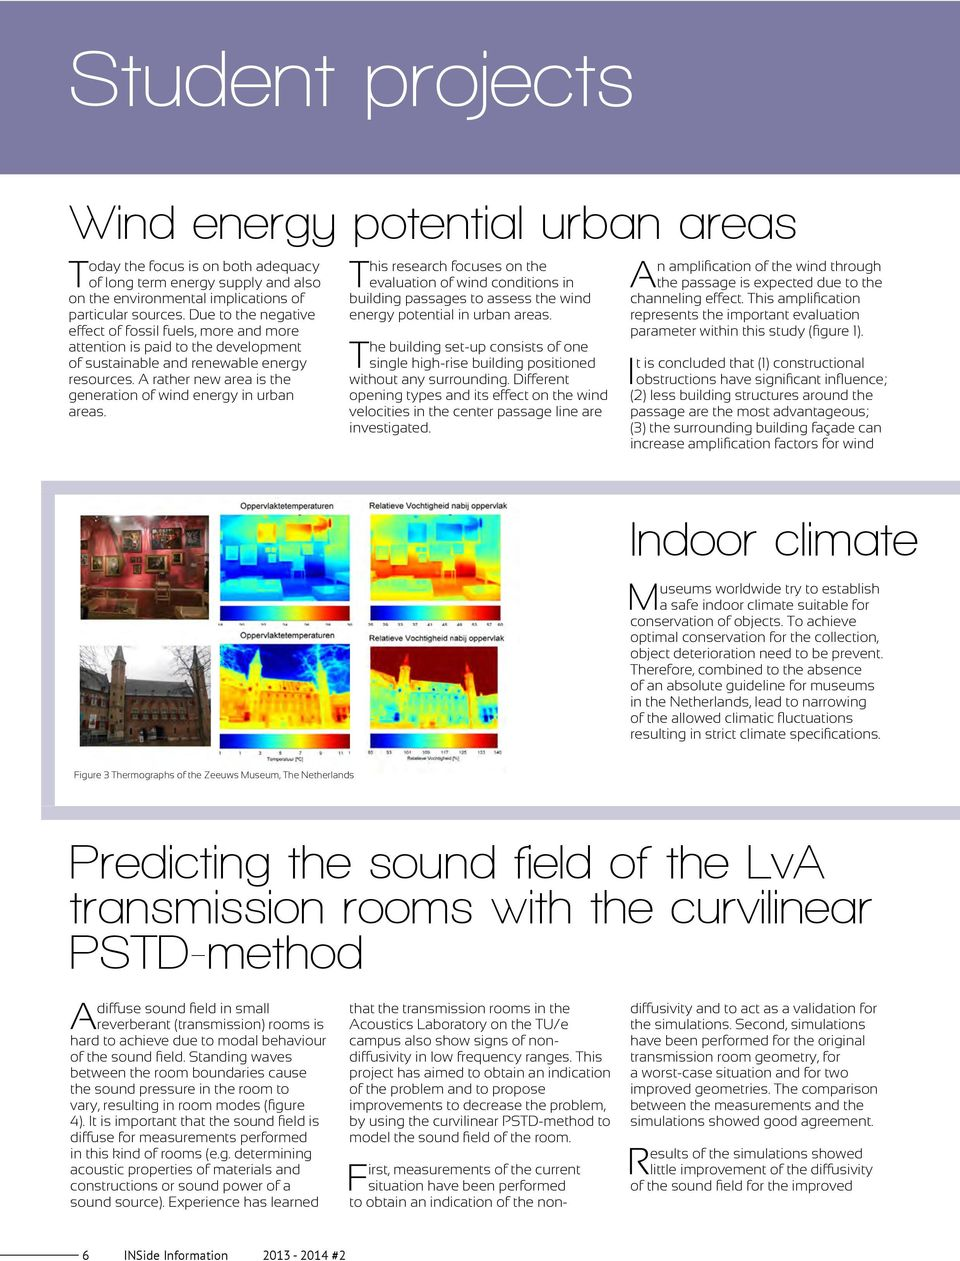 A rather new area is the generation of wind energy in urban areas. This research focuses on the evaluation of wind conditions in building passages to assess the wind energy potential in urban areas.